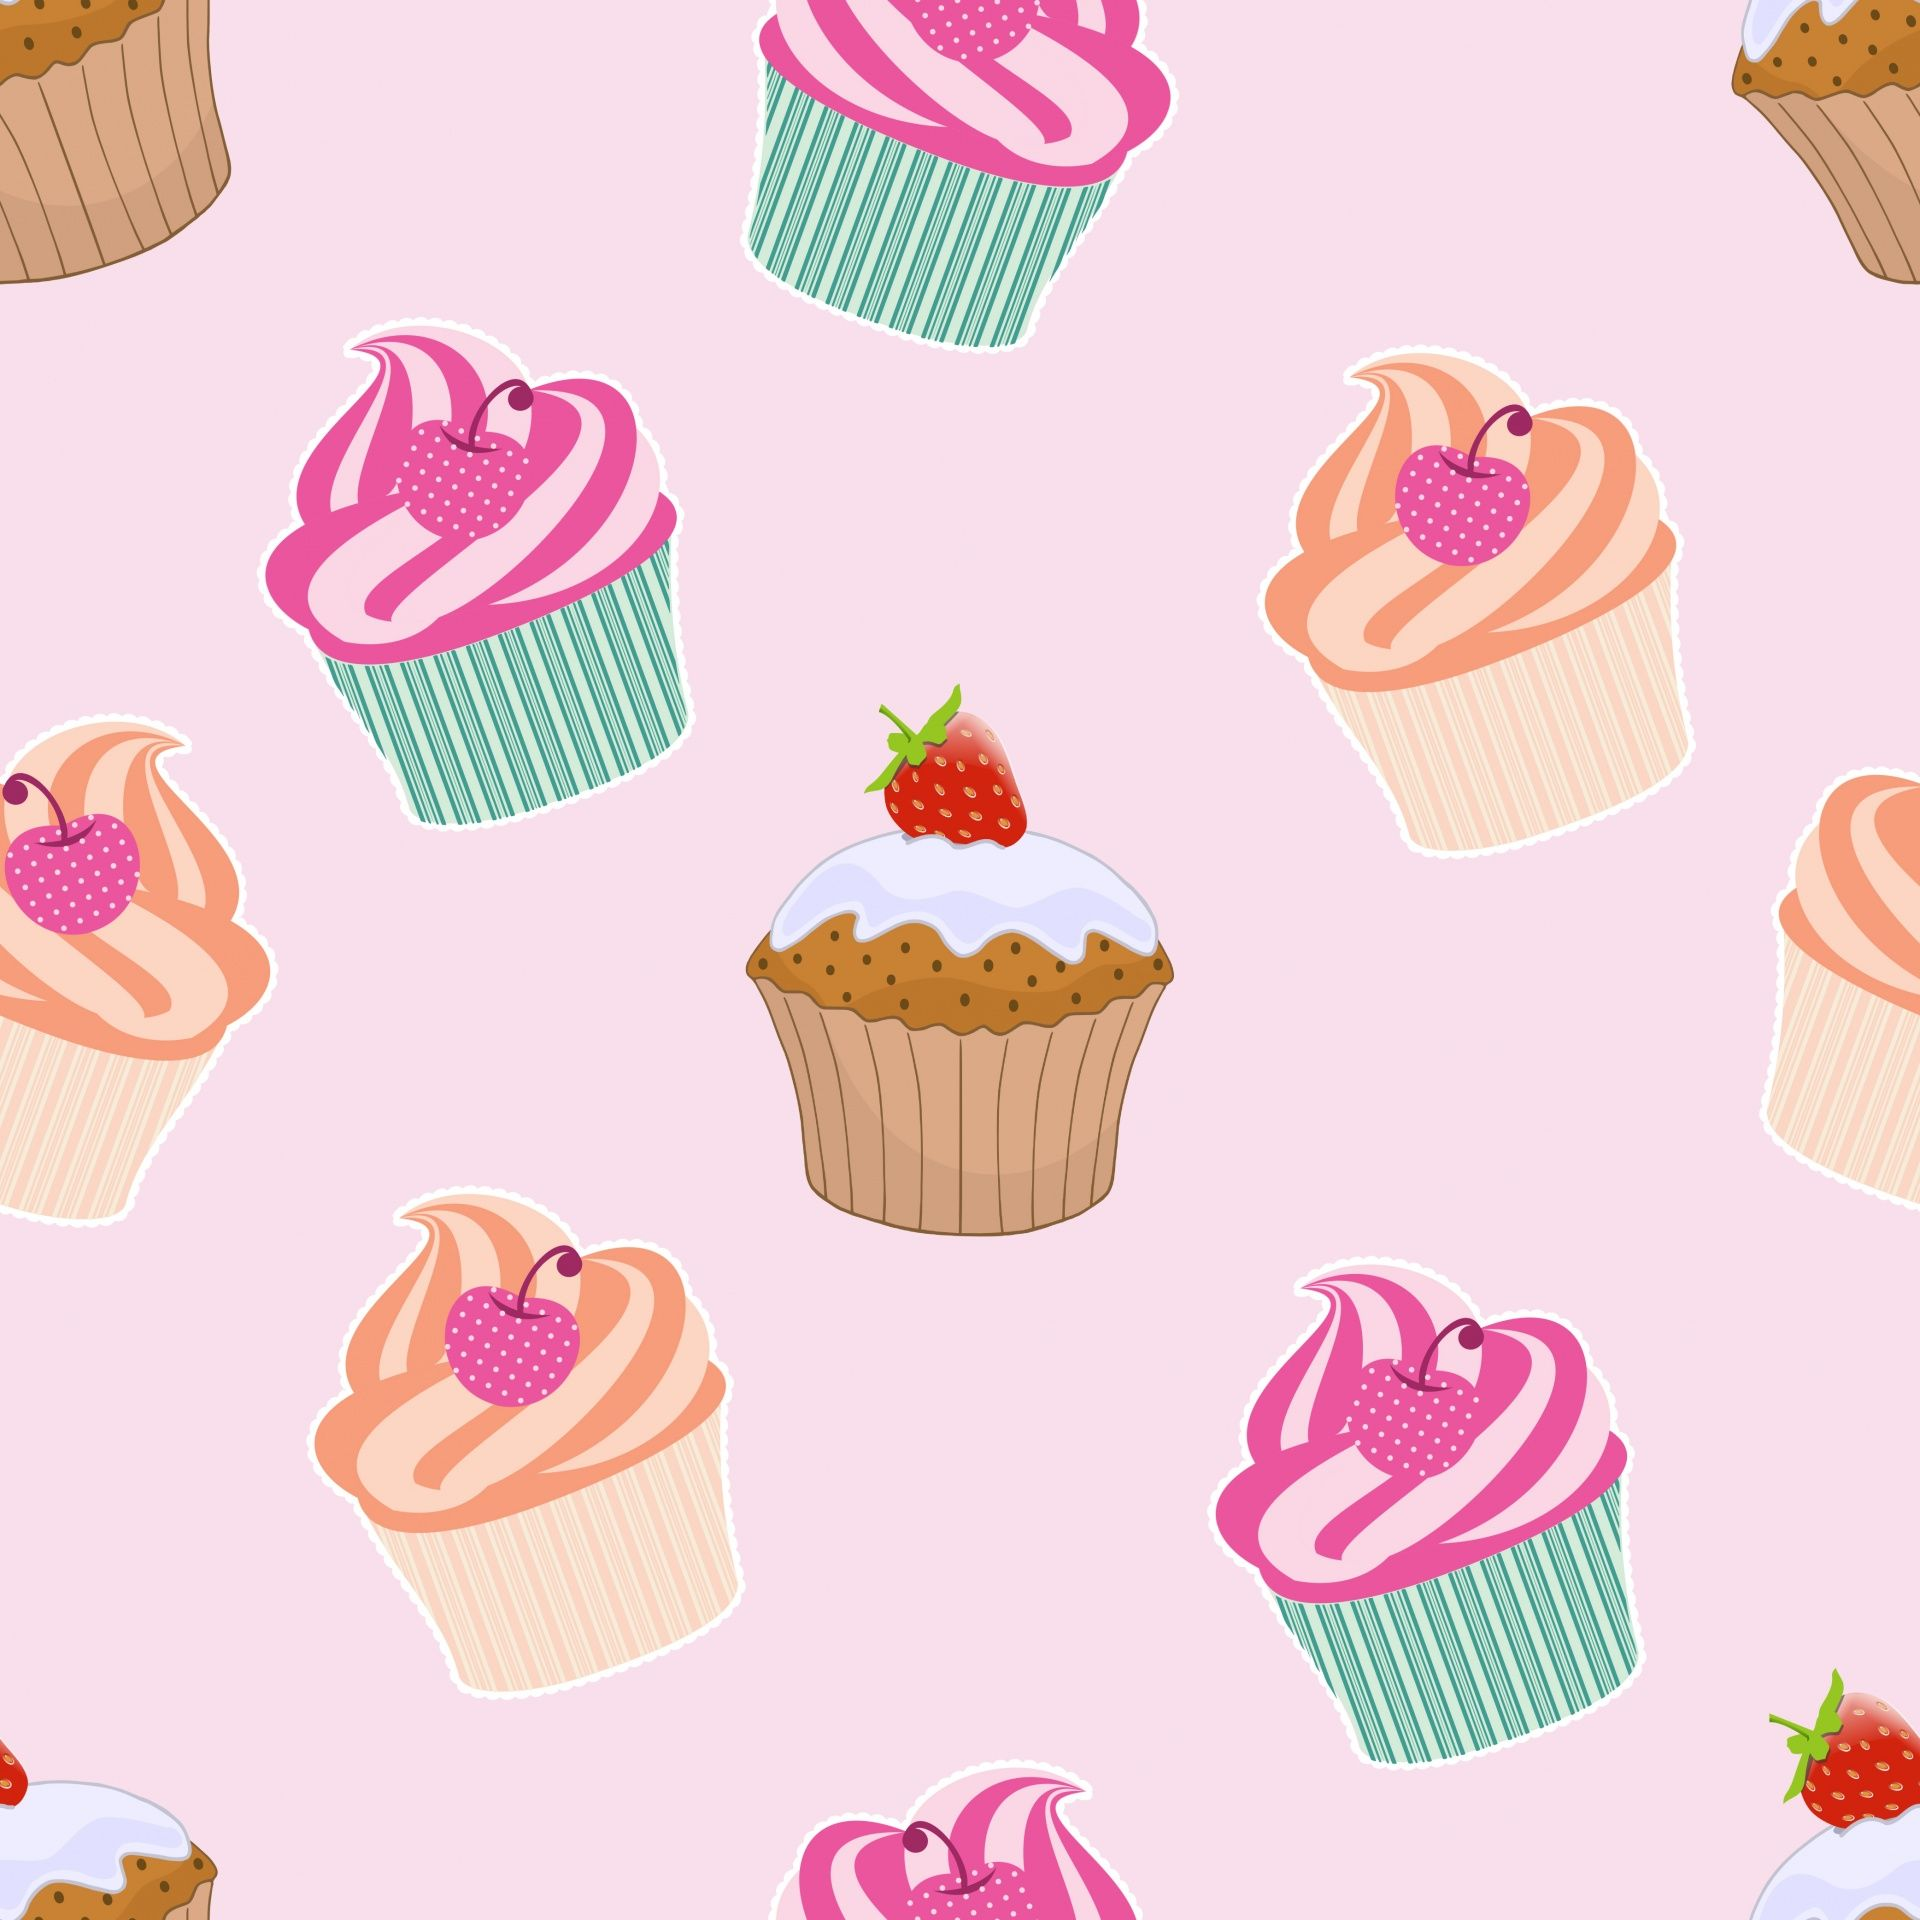 cupcakes and muffins wallpaper cupcakes wallpaper hello kitty images pink images cupcakes and muffins wallpaper